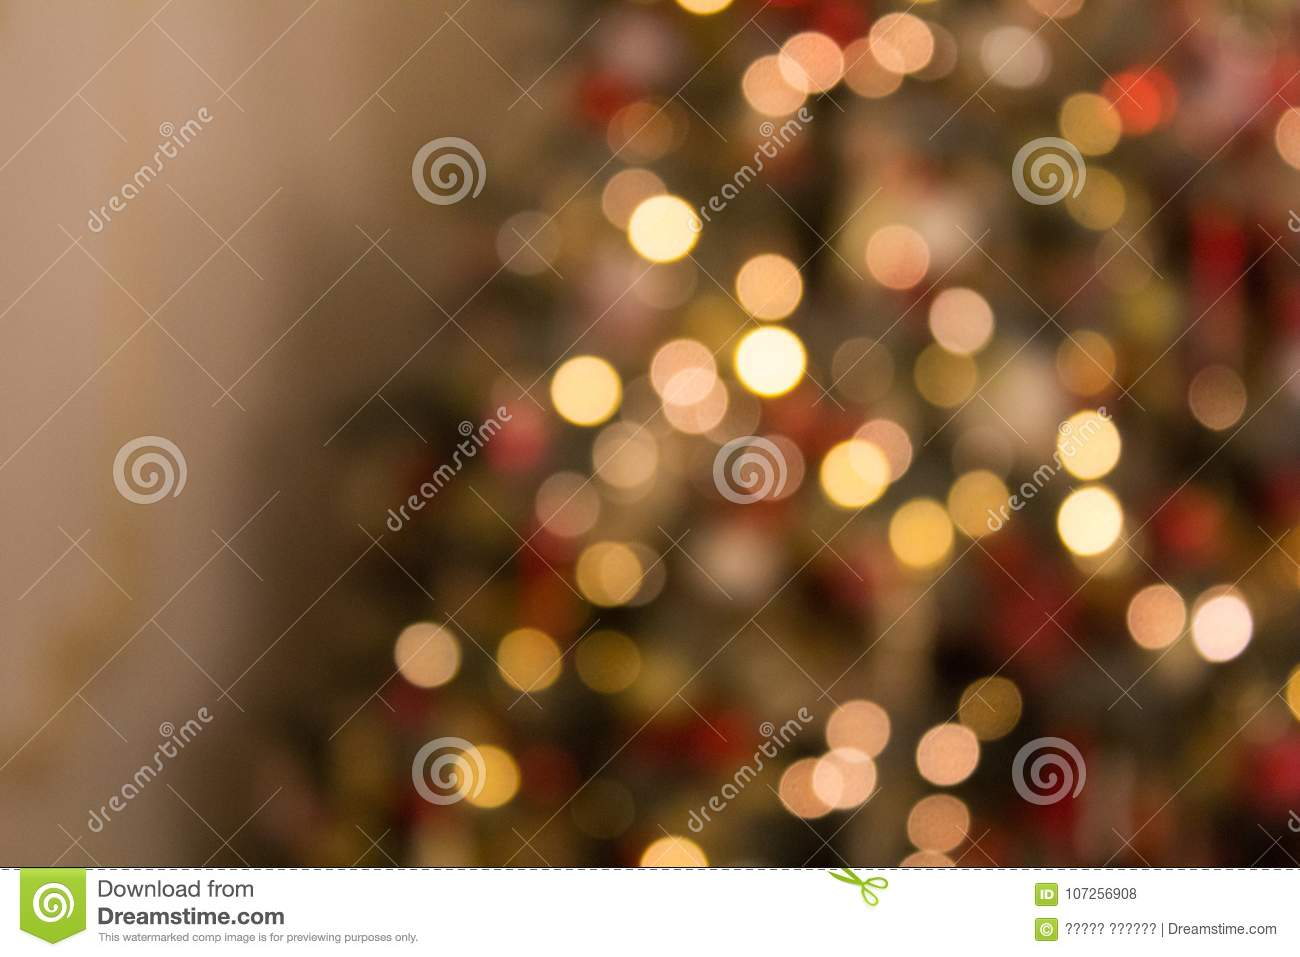 Blurred colored circles on a light holiday background